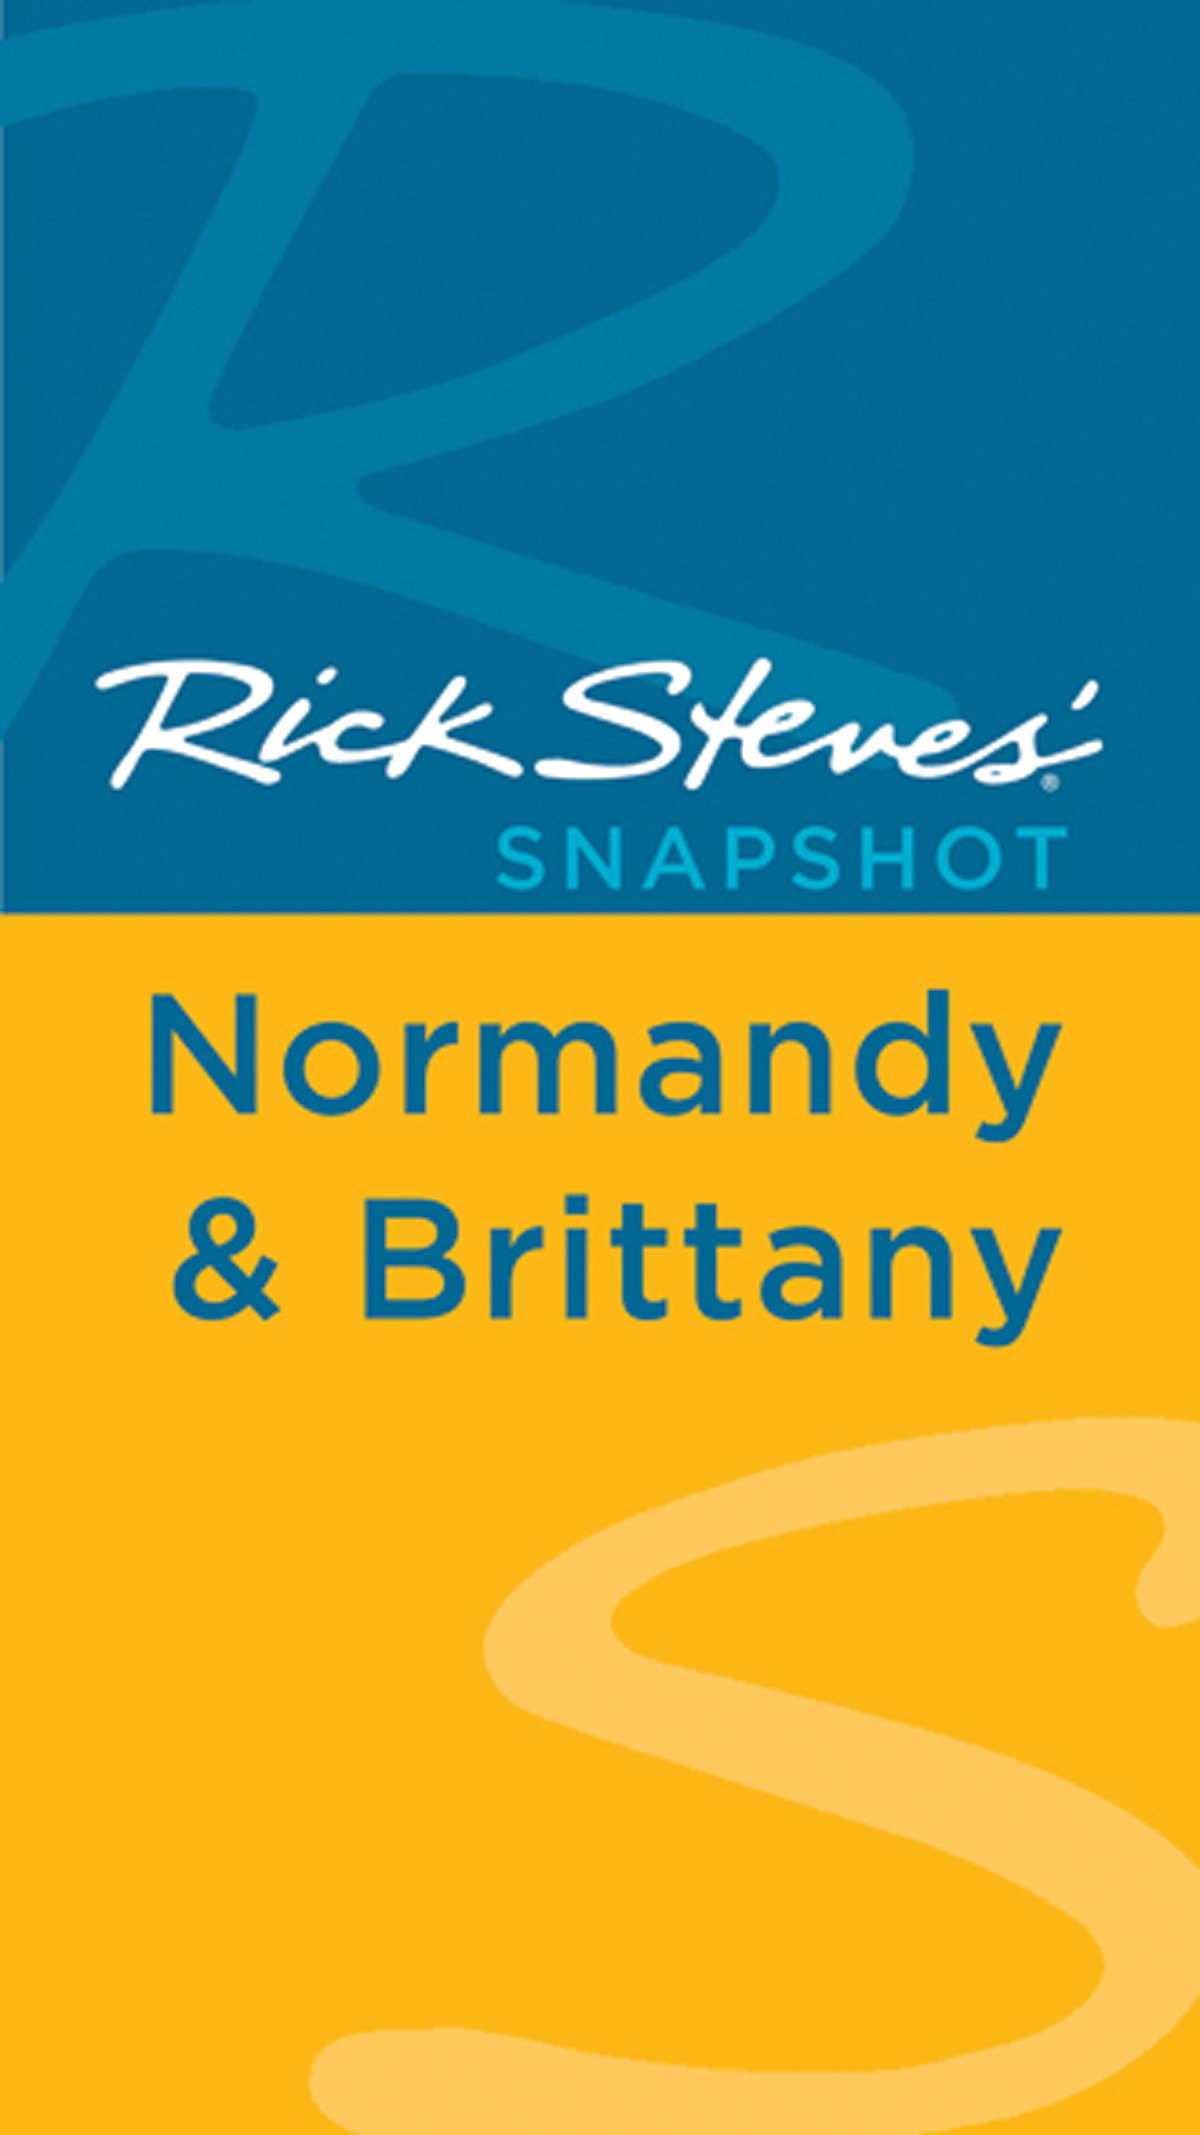 Rick Steves' Snapshot Normandy & Brittany